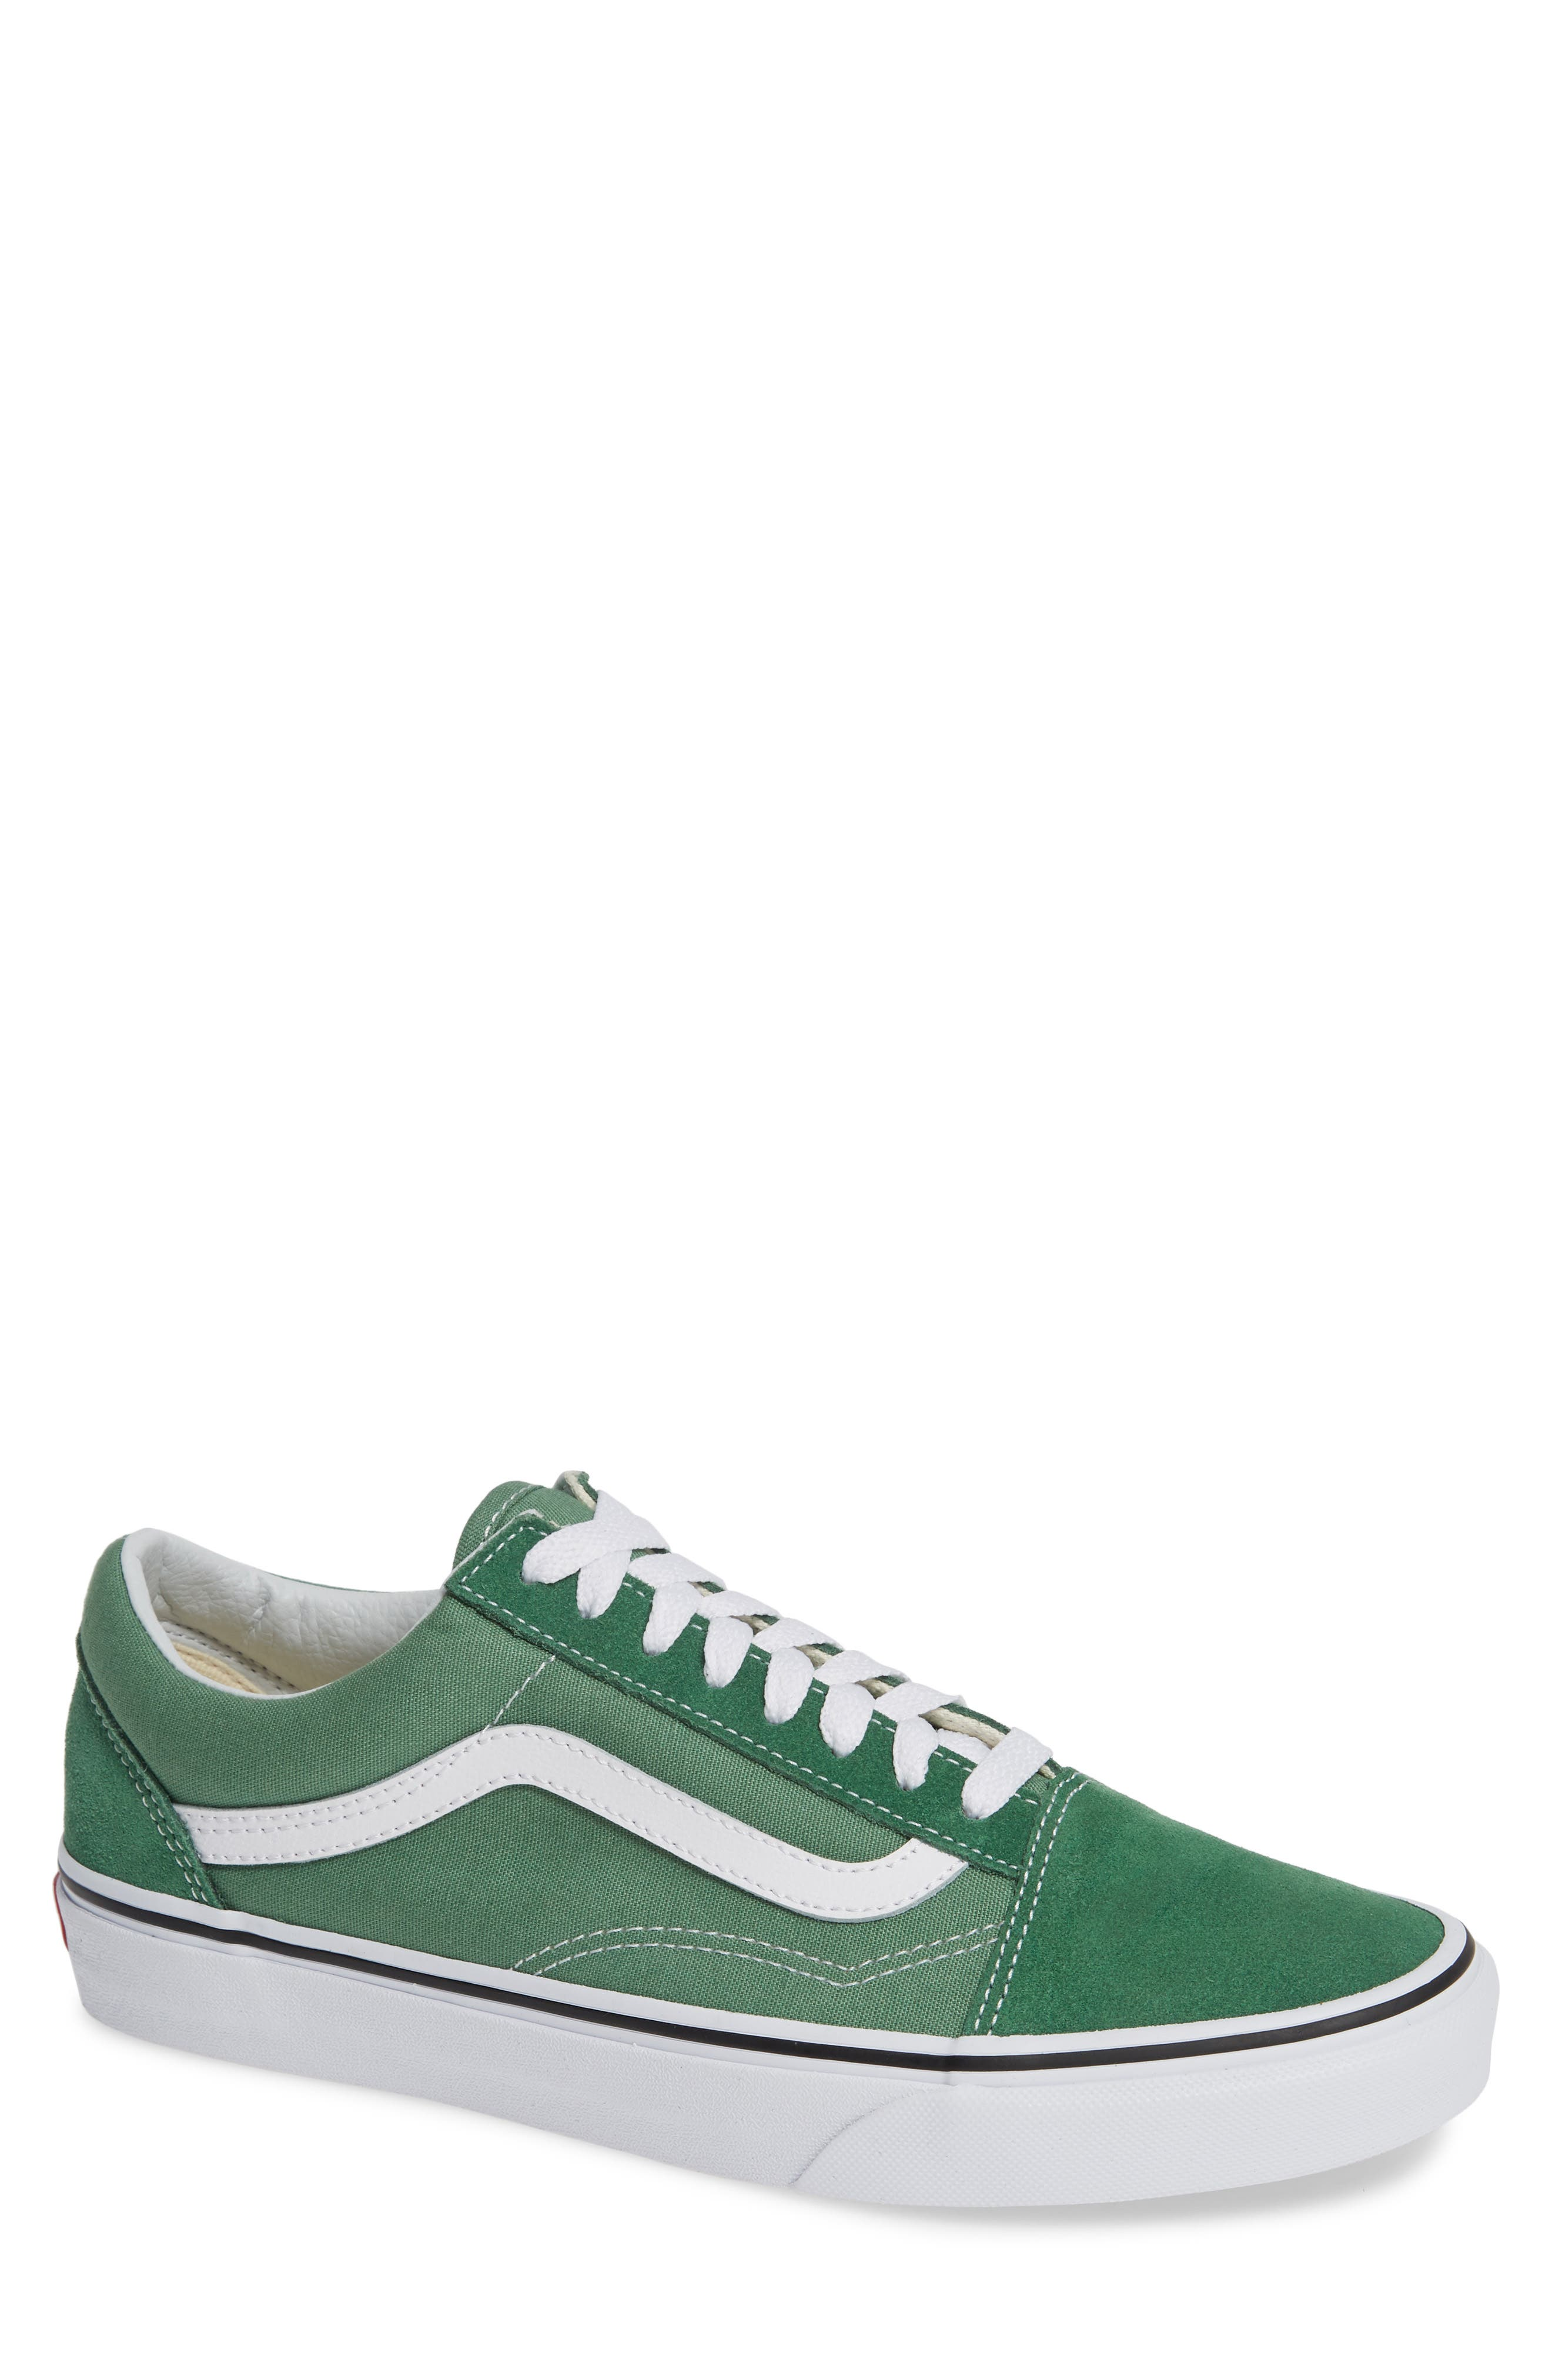 'Old Skool' Sneaker,                             Main thumbnail 1, color,                             DEEP GRASS GREEN/ TRUE WHITE